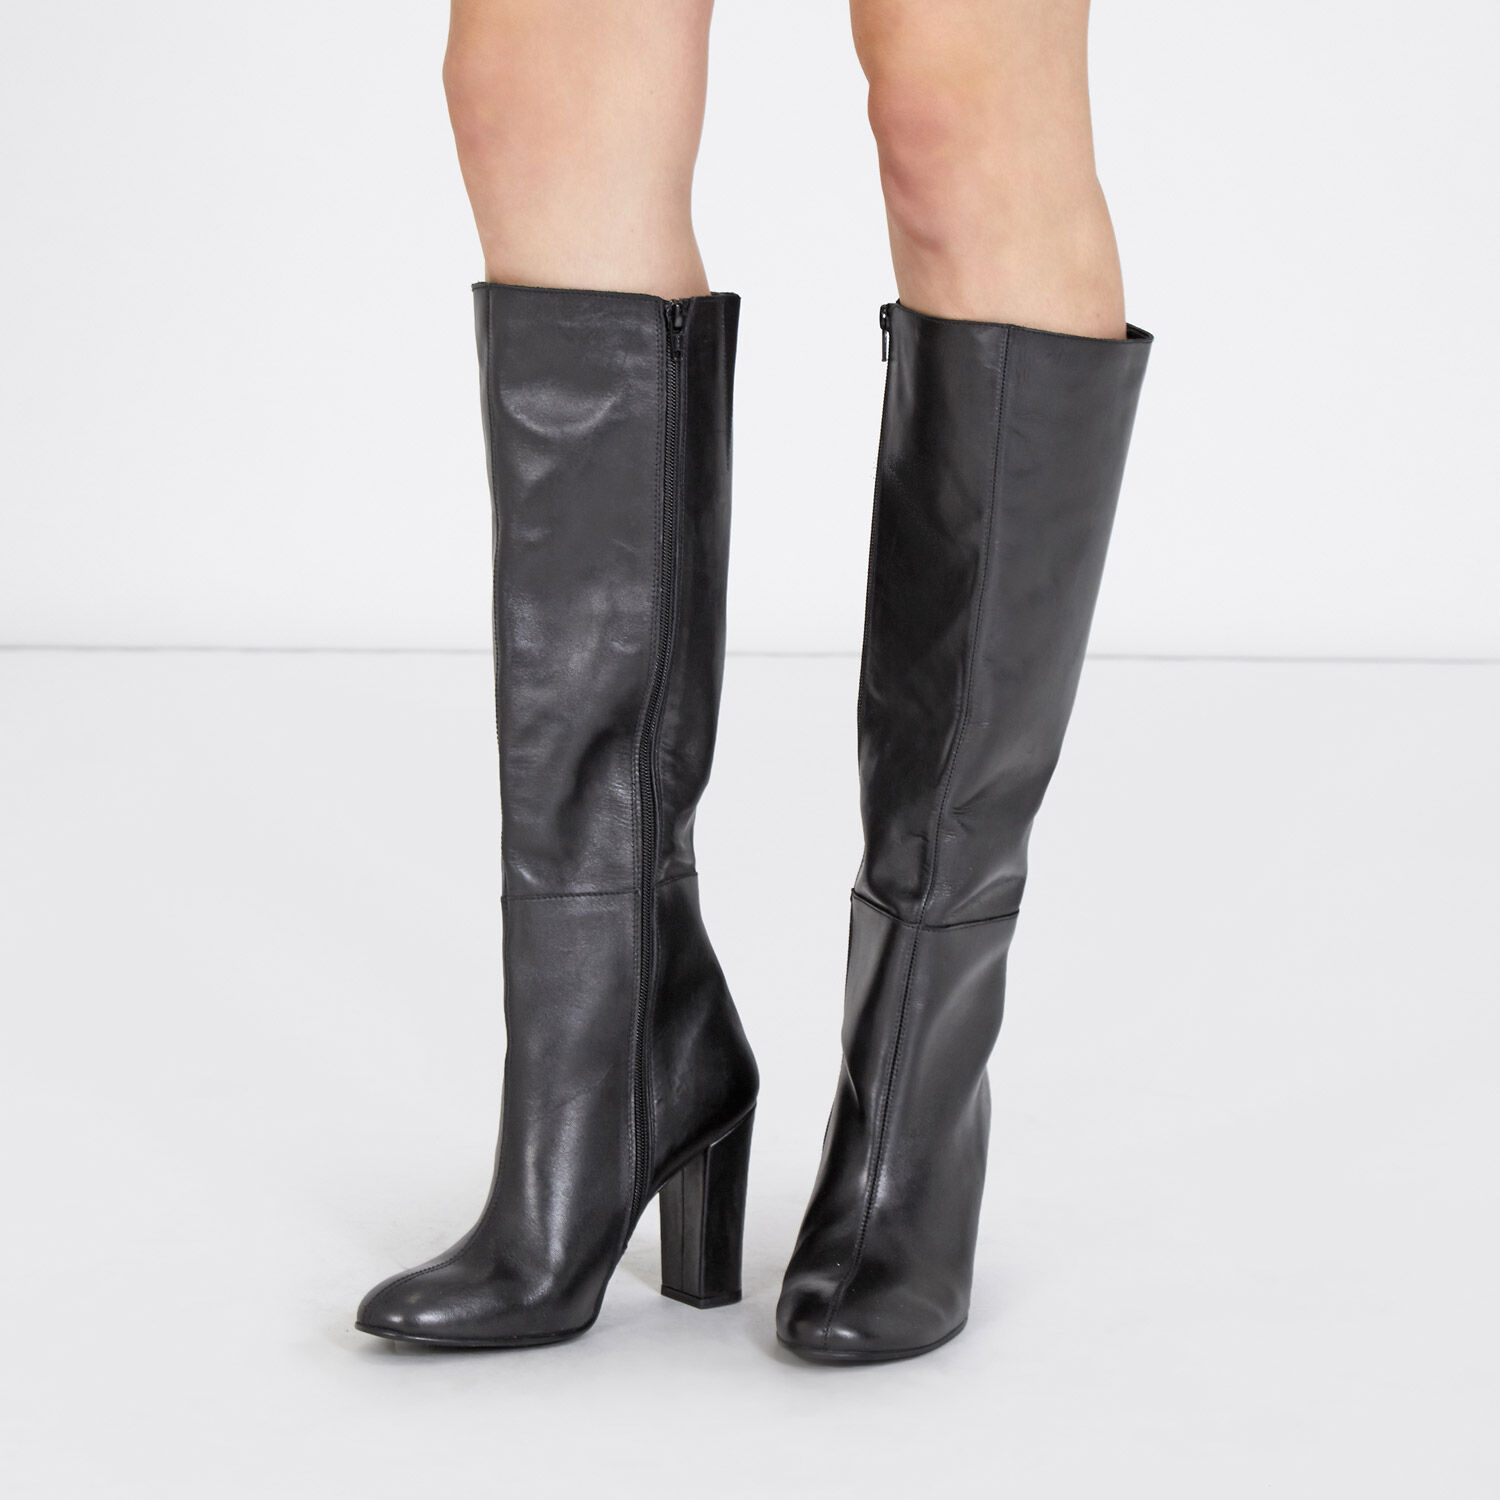 Warehouse, Leather Knee High Boots Black 1